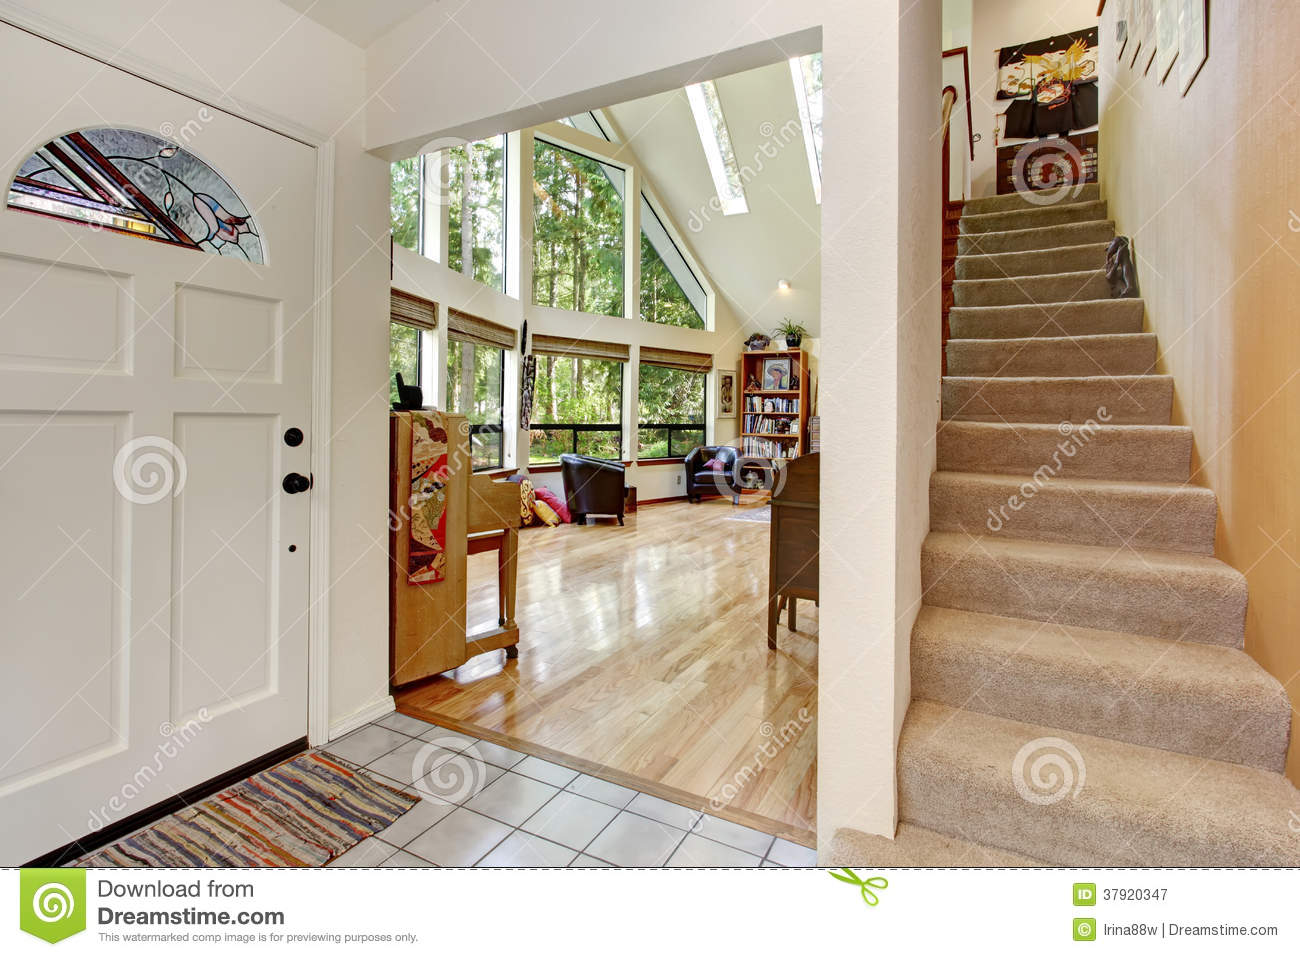 White entrance hallway stock image. Image of empty, stairs - 37920347